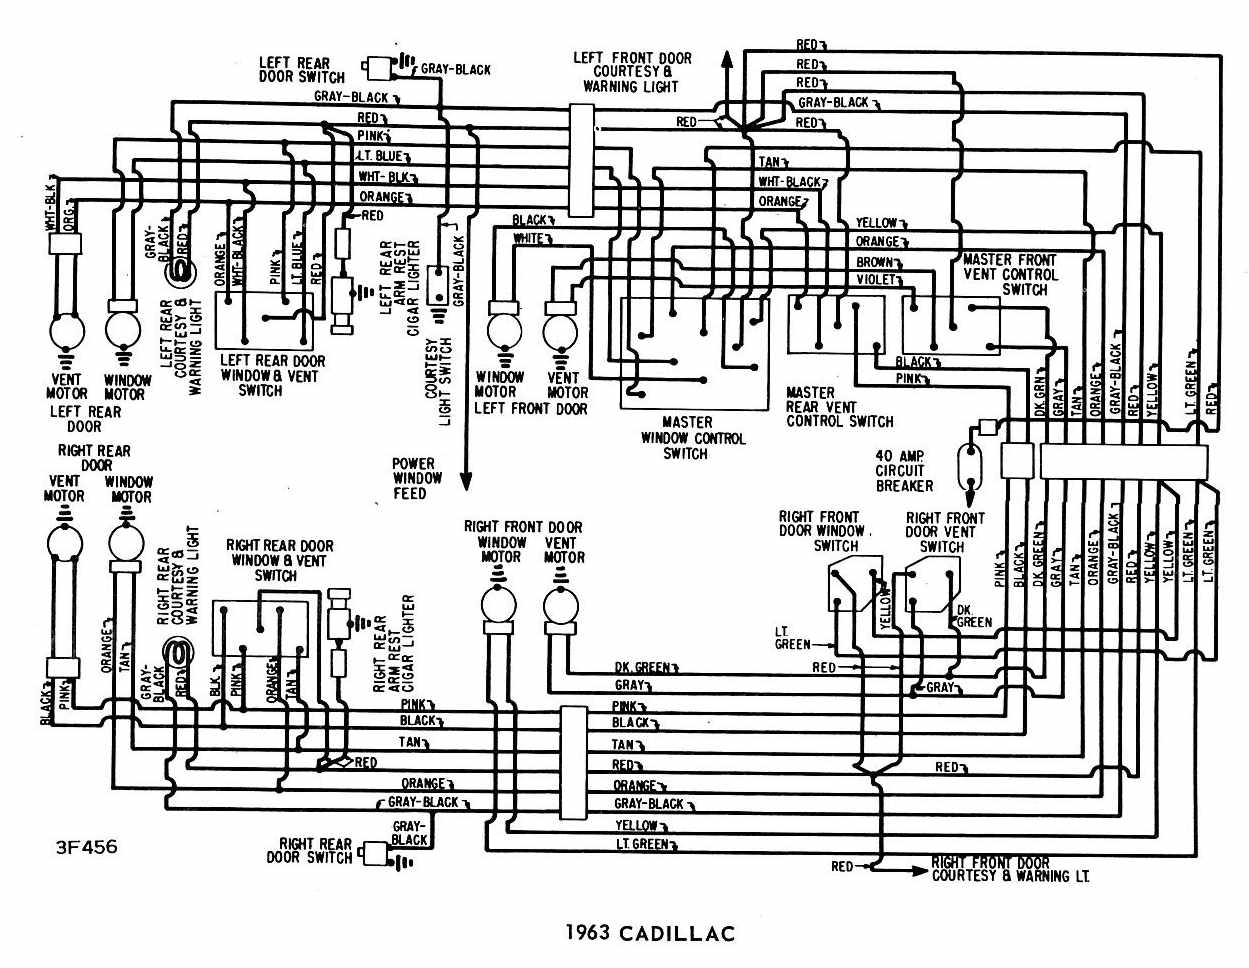 1963 cadillac wiring diagram additionally cadillac deville wiring